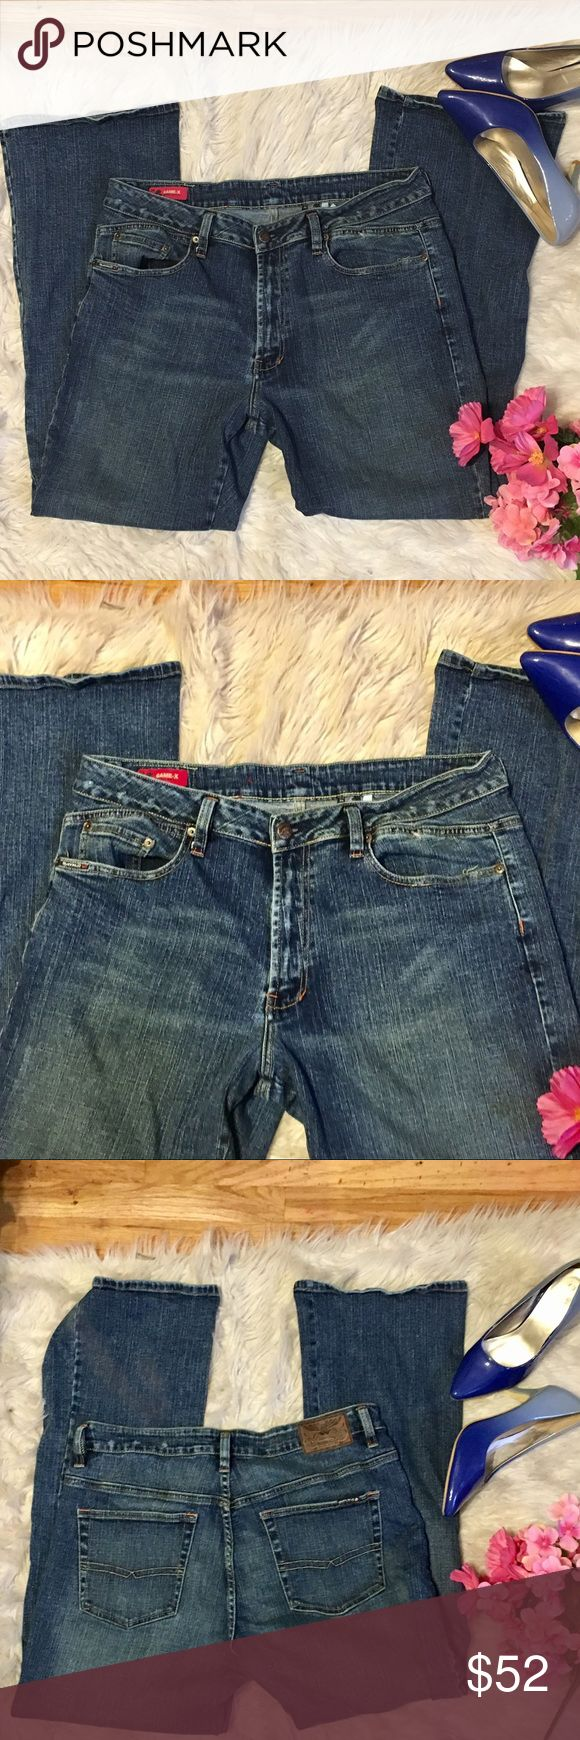 Buffalo by David Bitton relaxed jeans Buffalo by David Bitton boot leg relaxed jeans game x. 98% cotton 3% spandex. Like new condition. Size 36. Bundle and save 15% Buffalo David Bitton Jeans Boot Cut